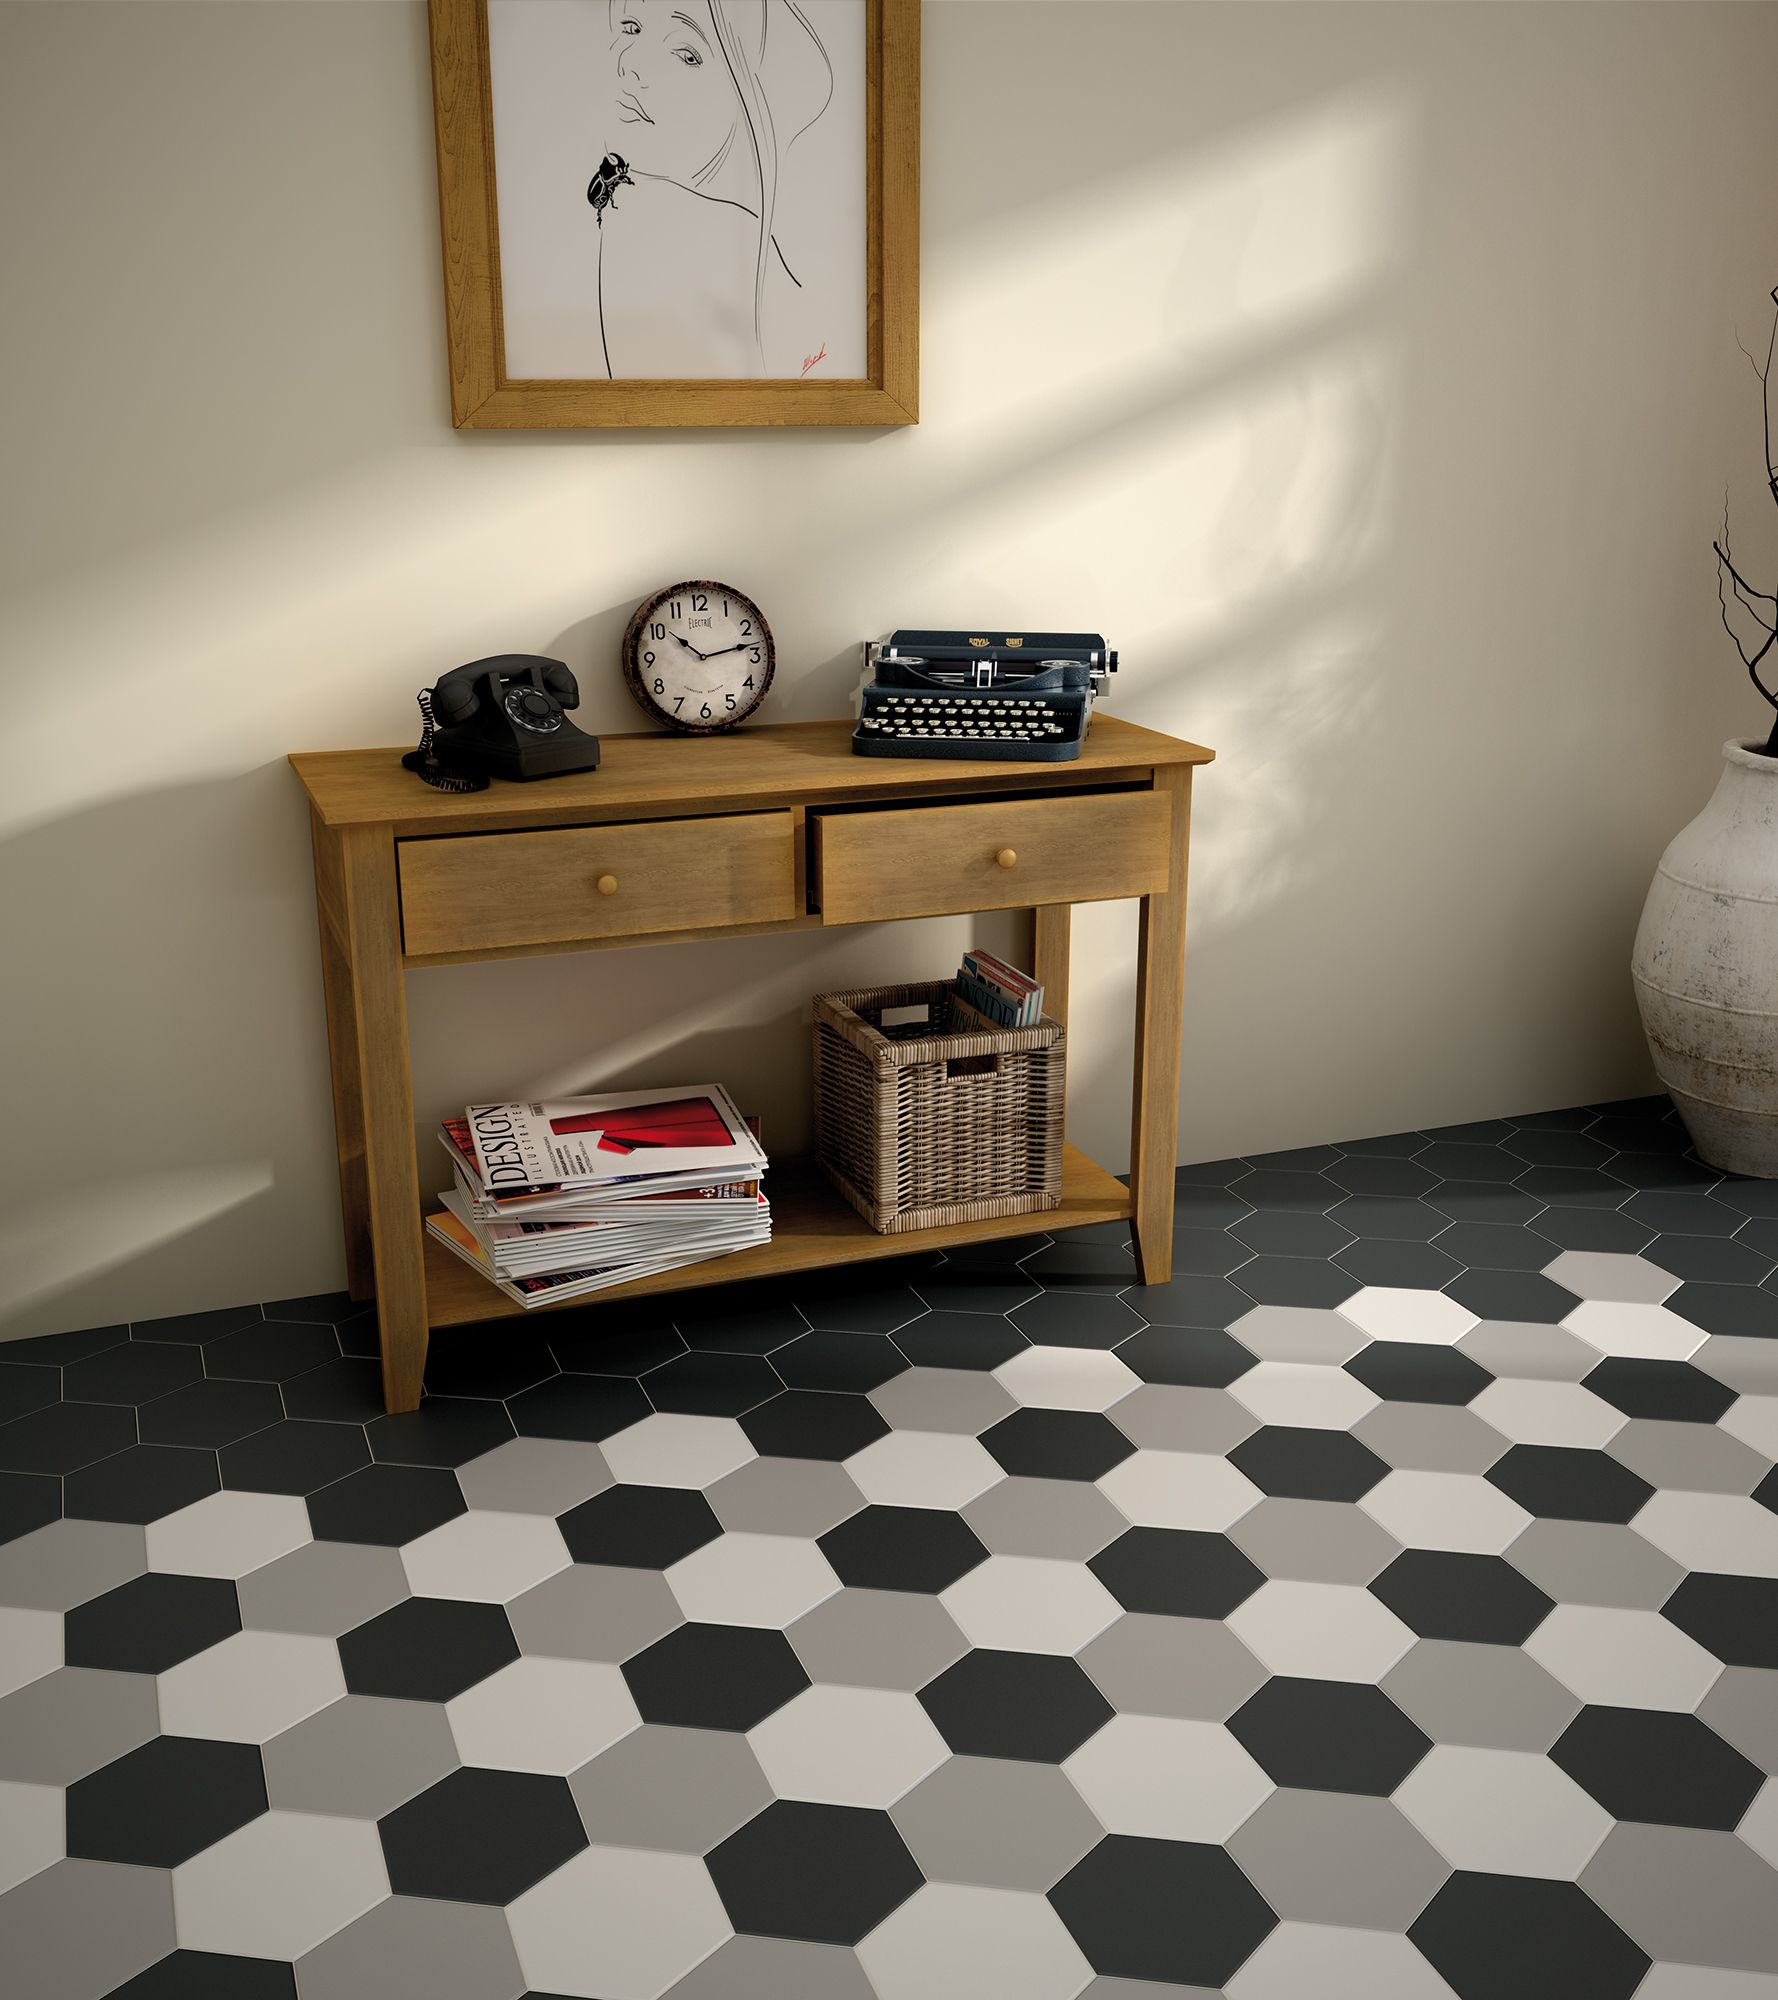 In Style Dimensionshexagonal Tiles In Black, Grey And White Colors